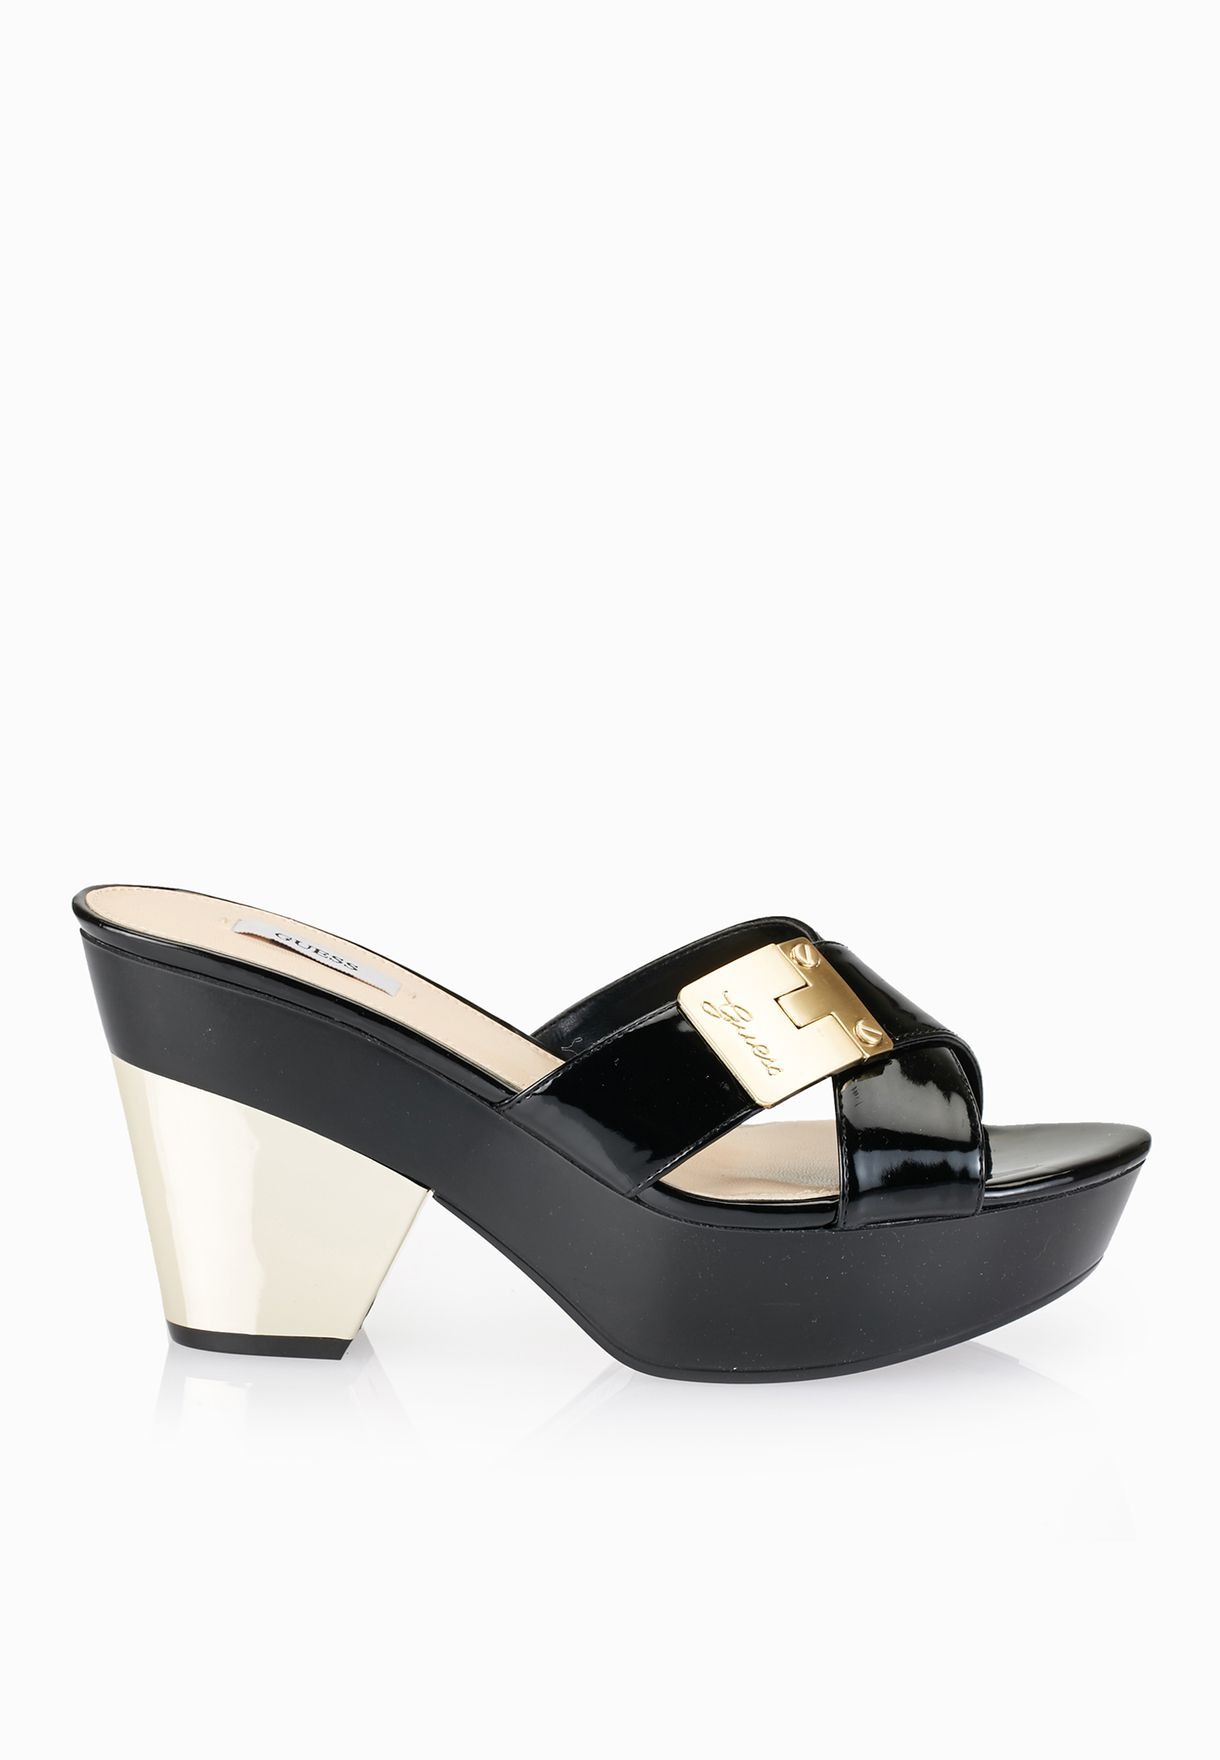 d5ab281413a Shop Guess black Cross Strap Platform Sandals gwCRESA2-B for Women in Saudi  - GU094SH85WFE